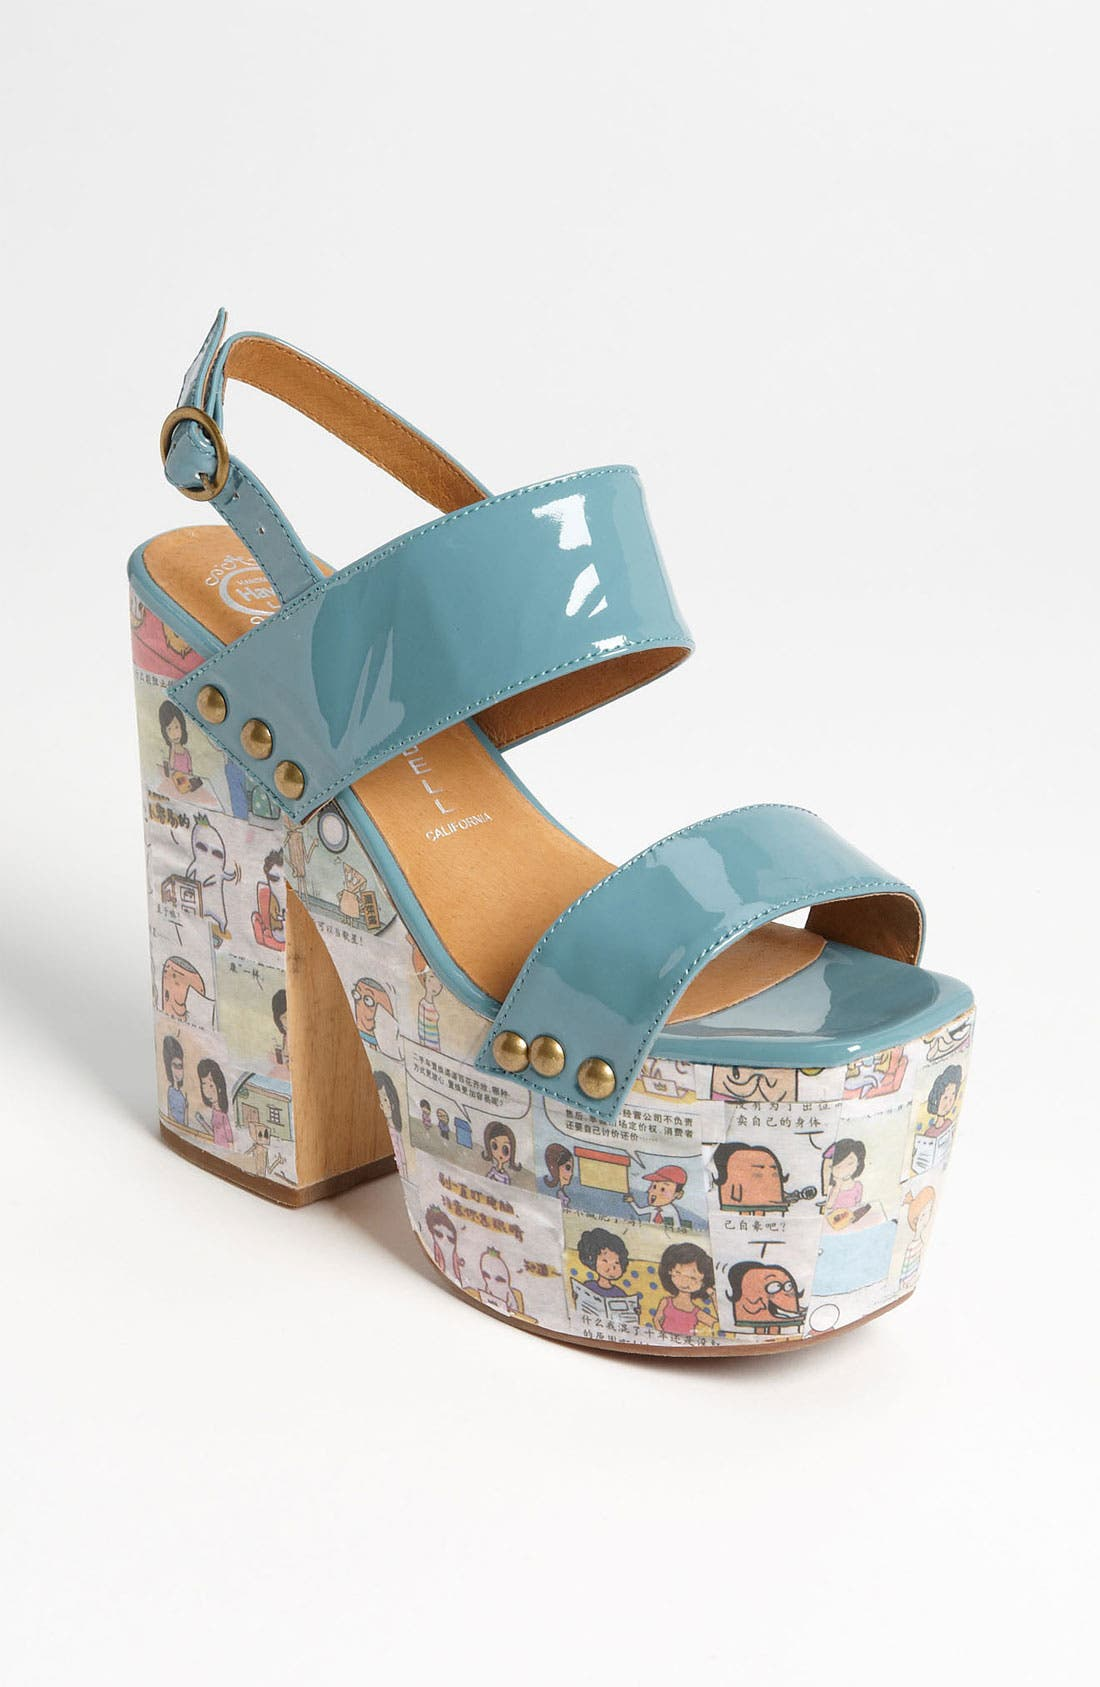 Main Image - Jeffrey Campbell 'Newsies' Sandal